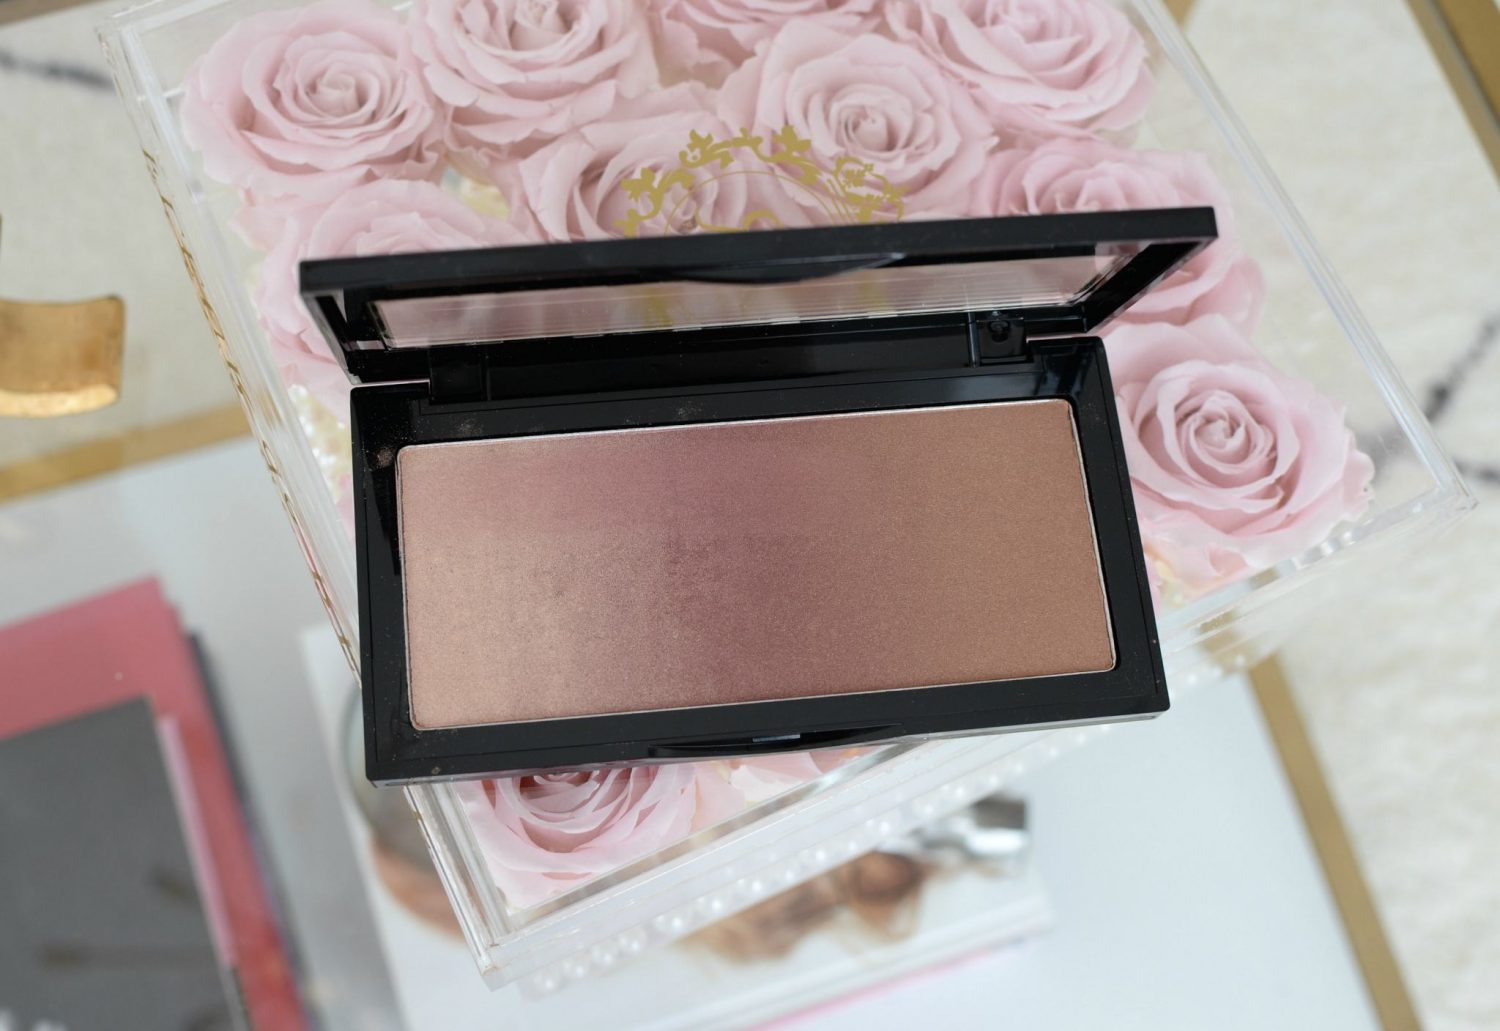 Kiss NY Pro Ombre Radiance Palette | The Pink Millennial